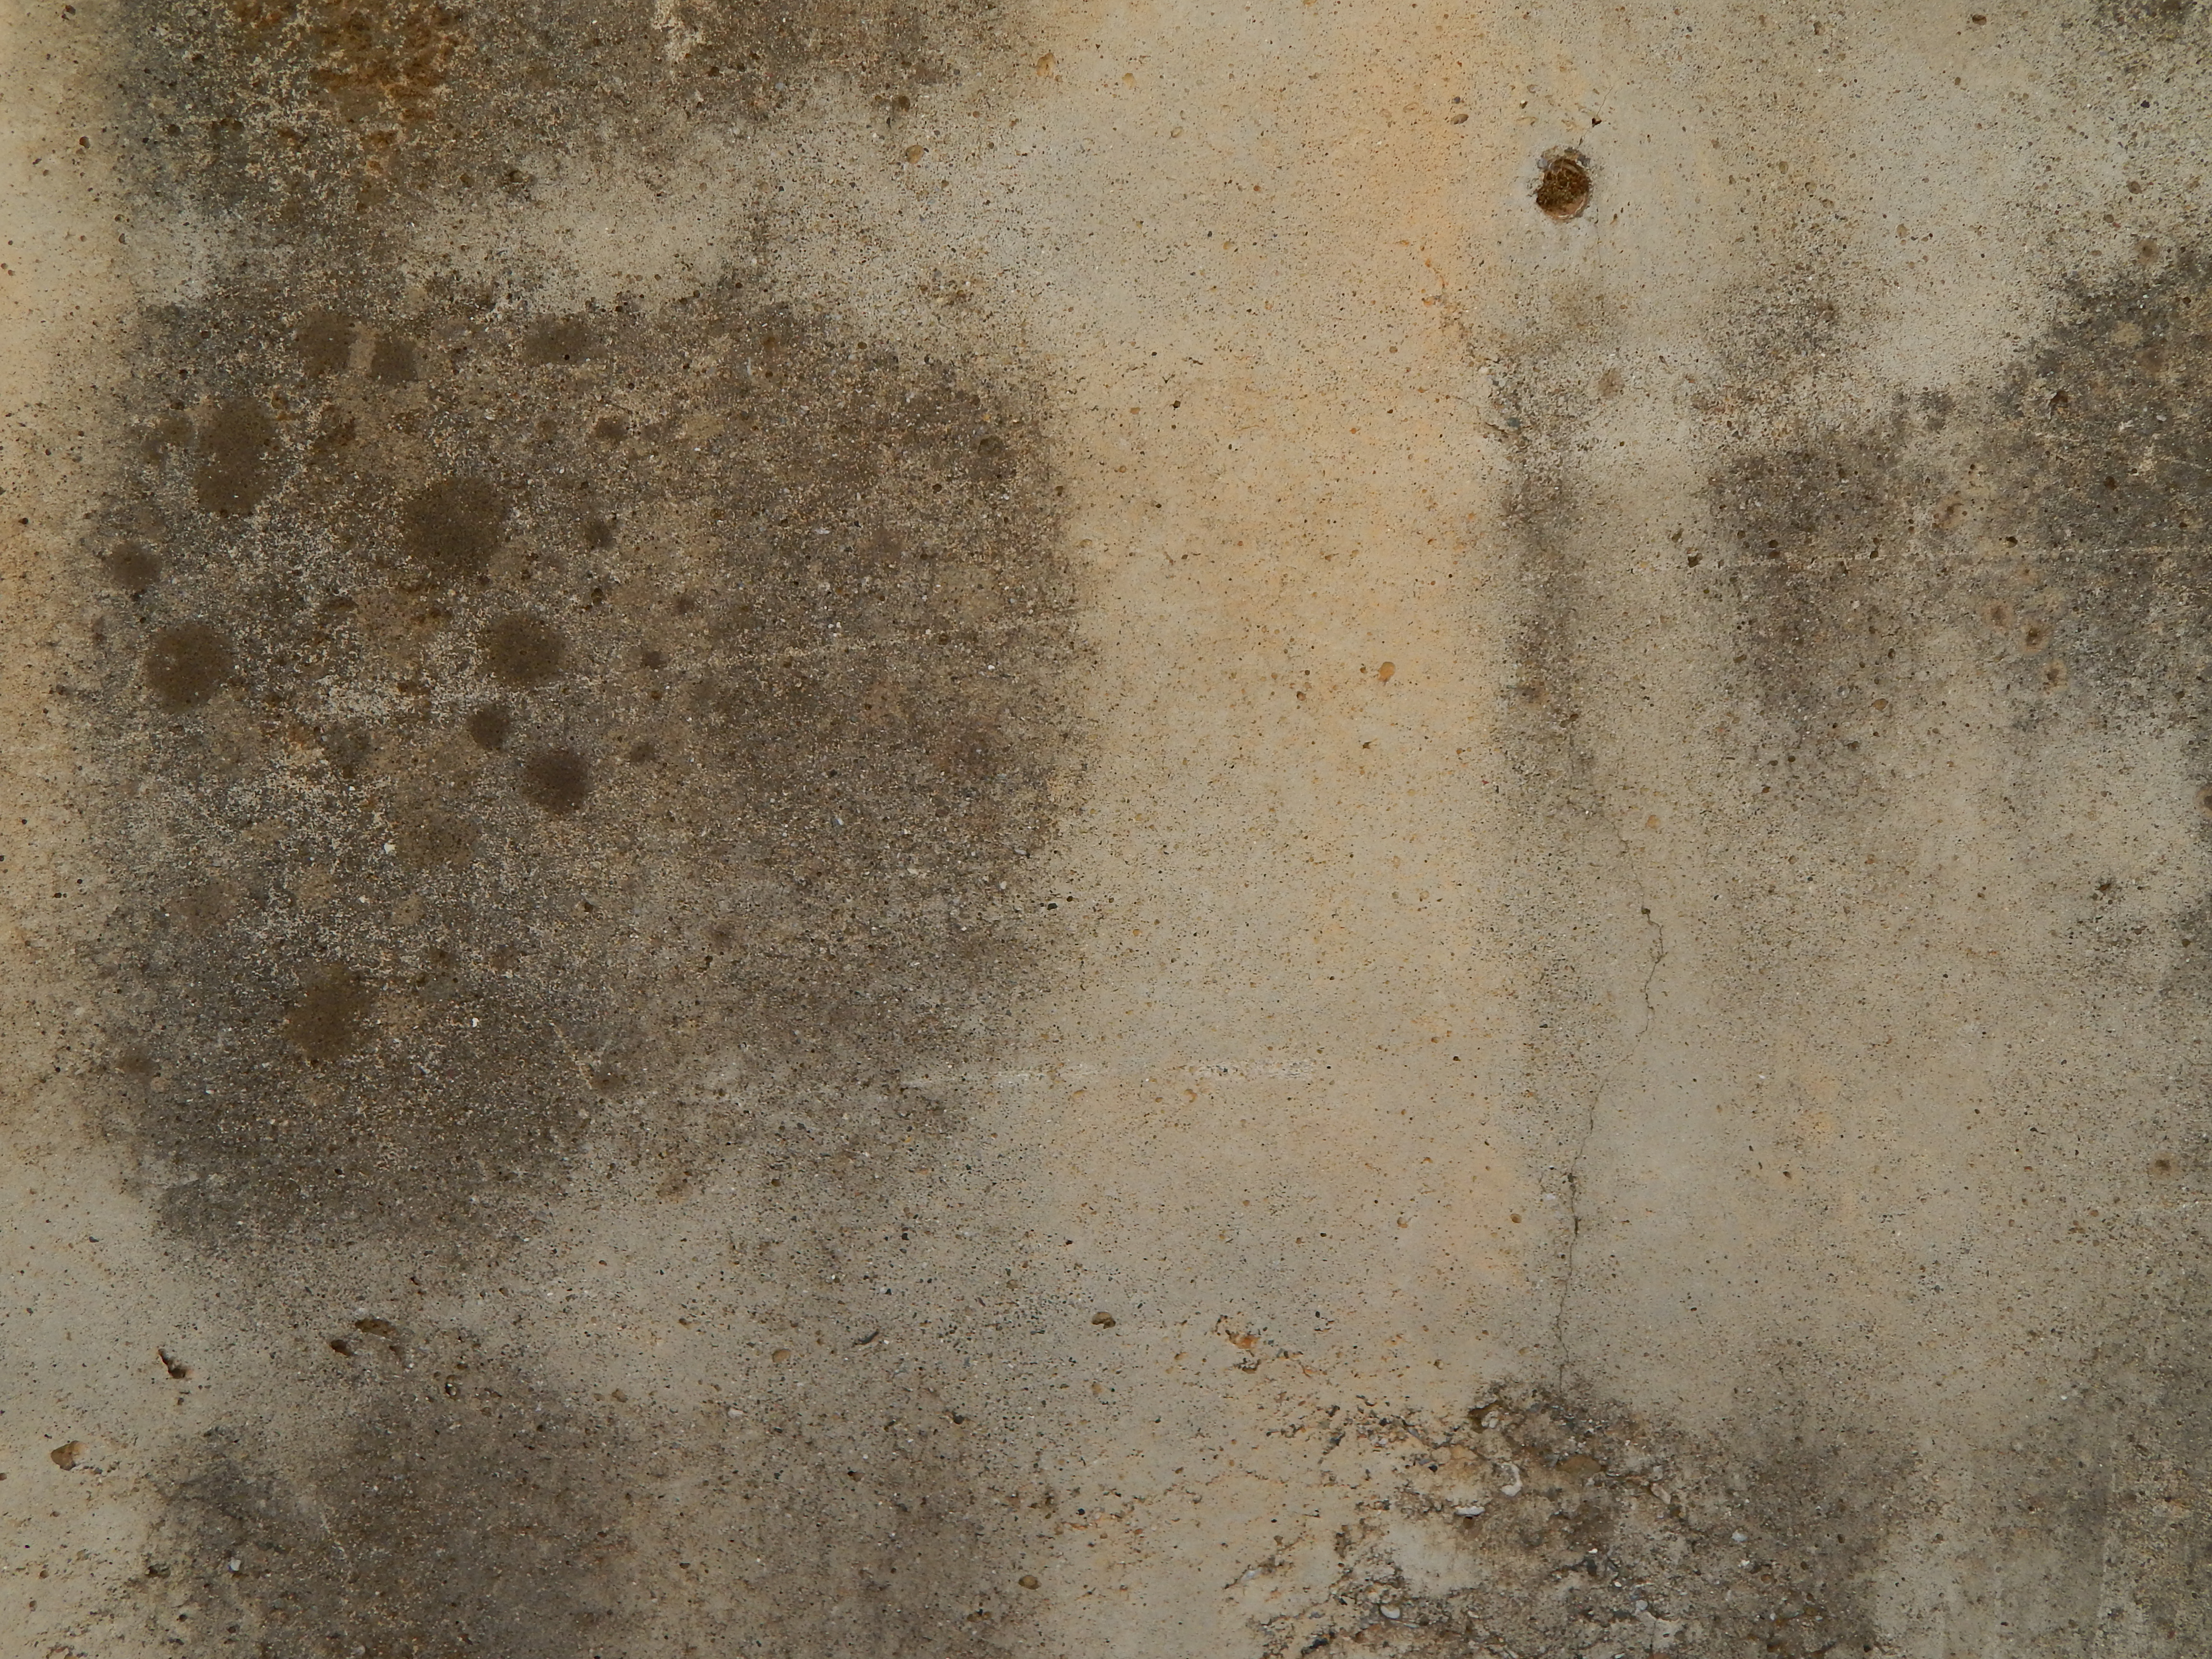 Mold Removal Services in Pell City, AL